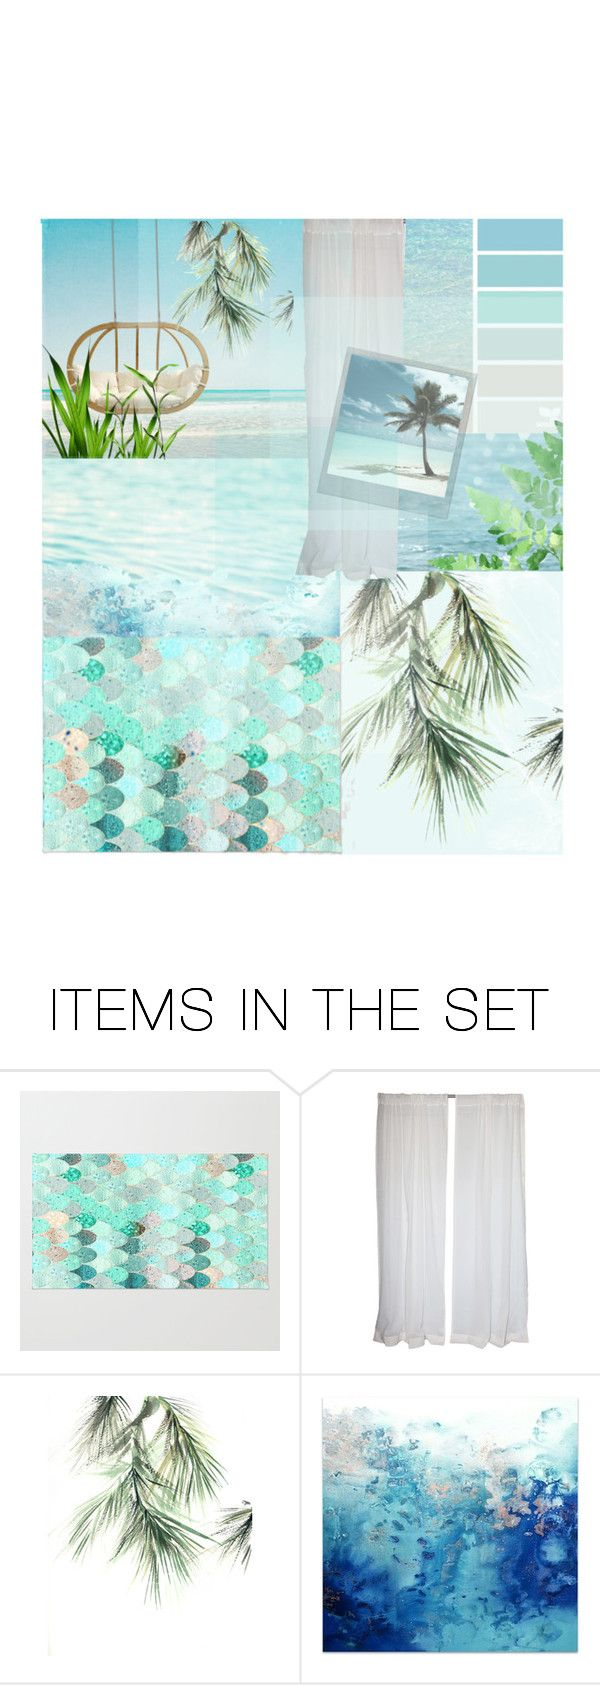 """f l y   a w a y"" by emelietegebo on Polyvore featuring art"